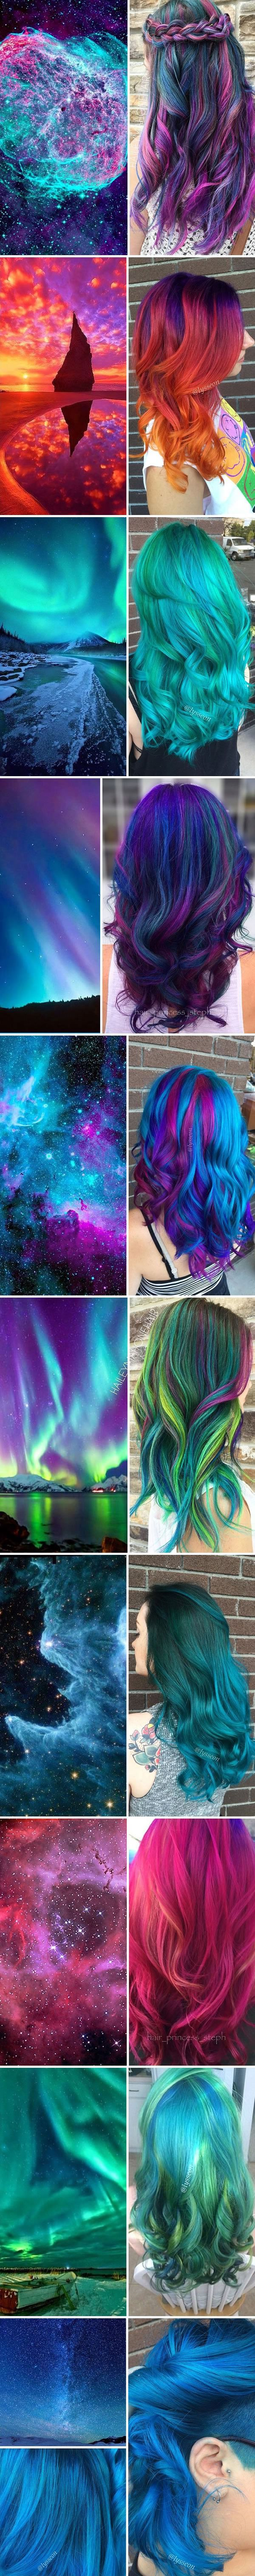 Men and women are sharing photos of hairstyles inspired by the colors of far away galaxies